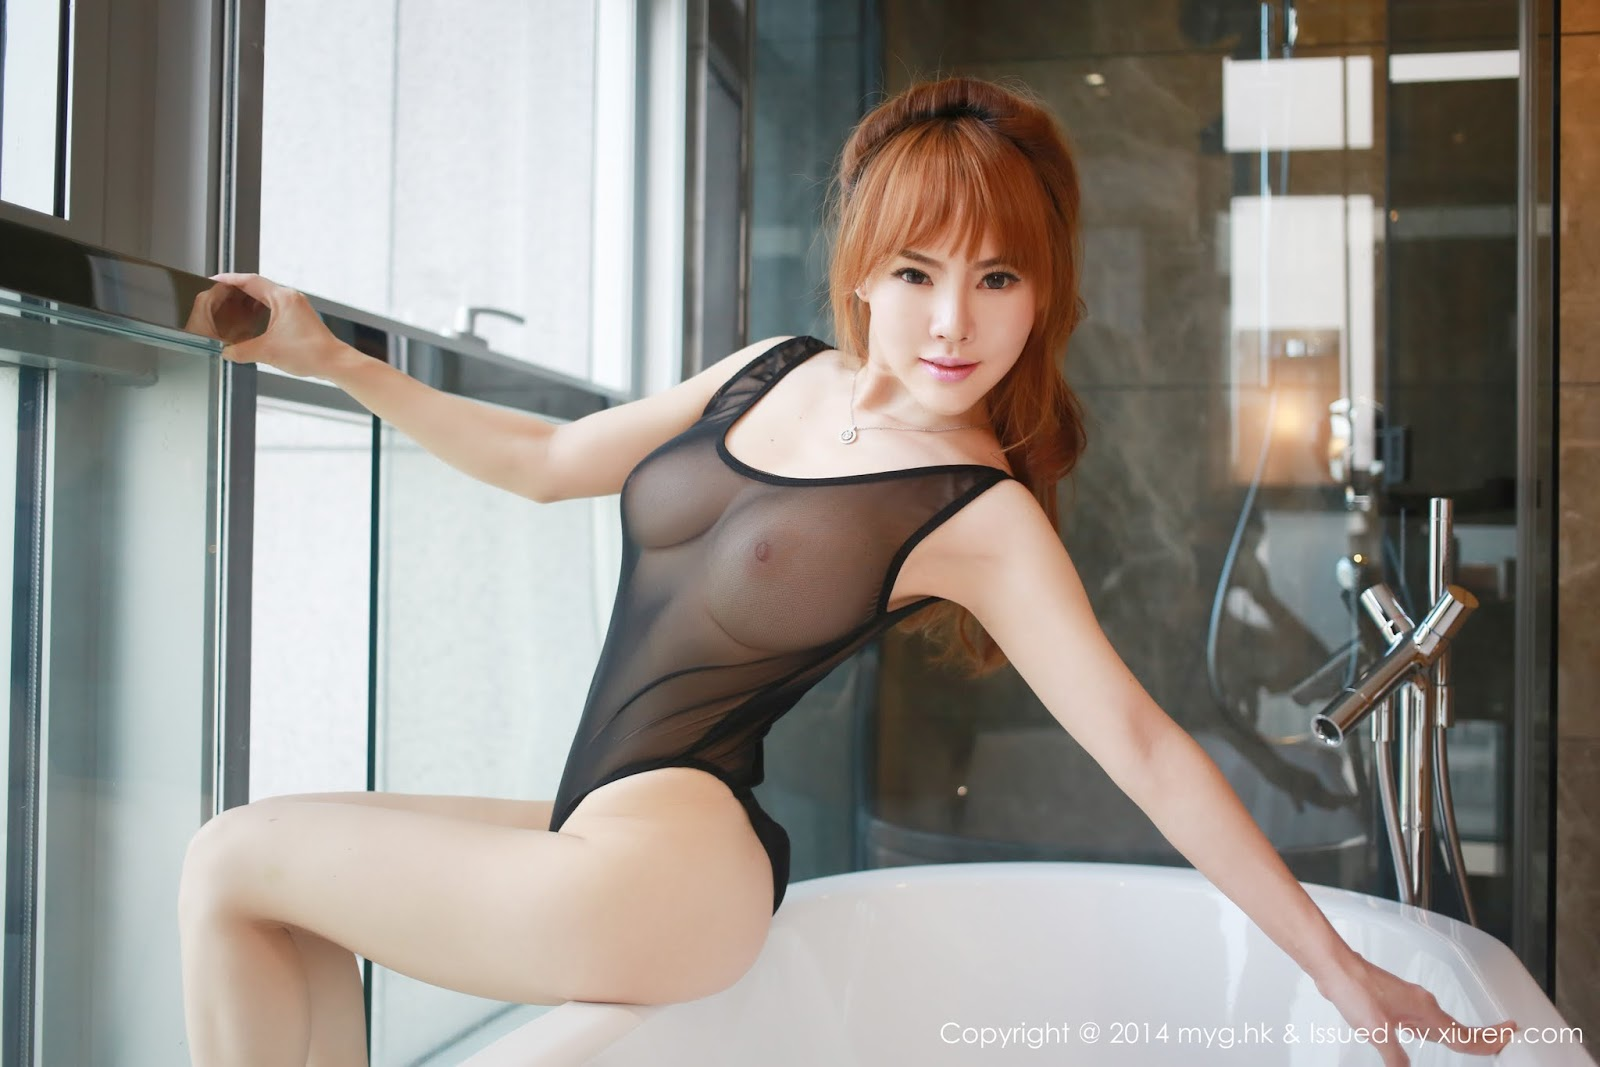 10045 - Photo Nude Hot MYGIRL VOL.32